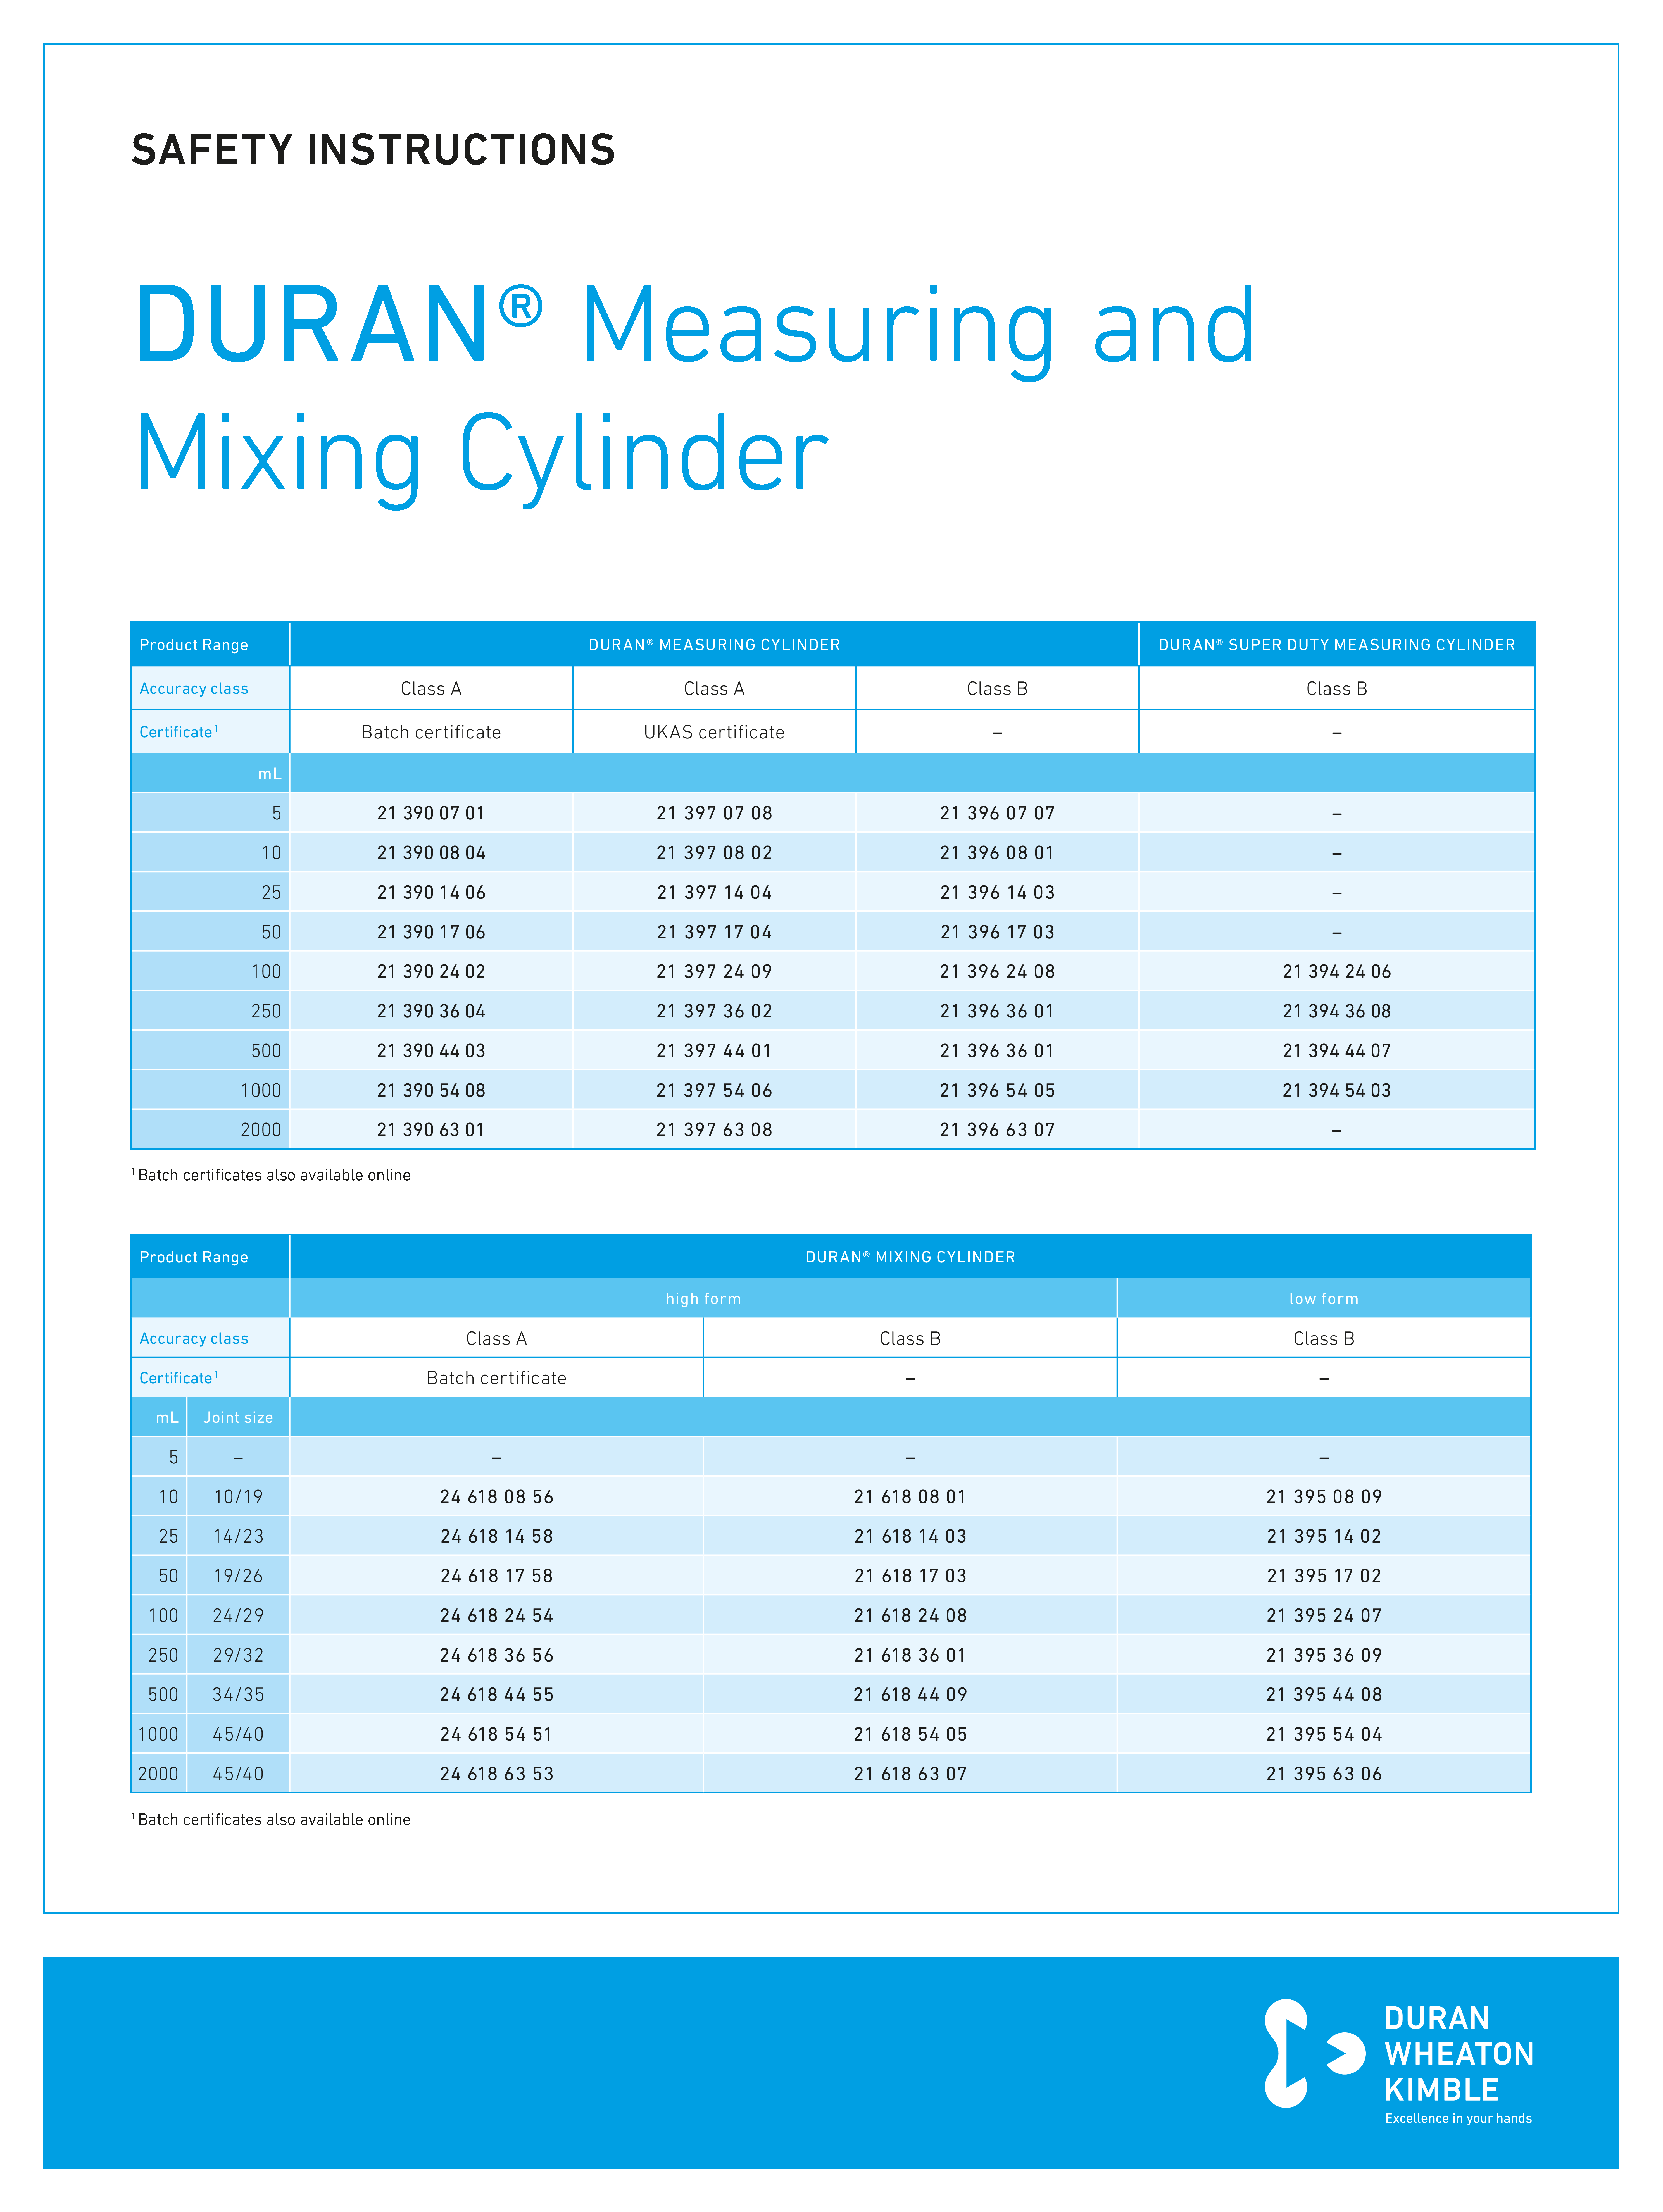 Safety Instructions DURAN® Measuring & Mixing Cylinder